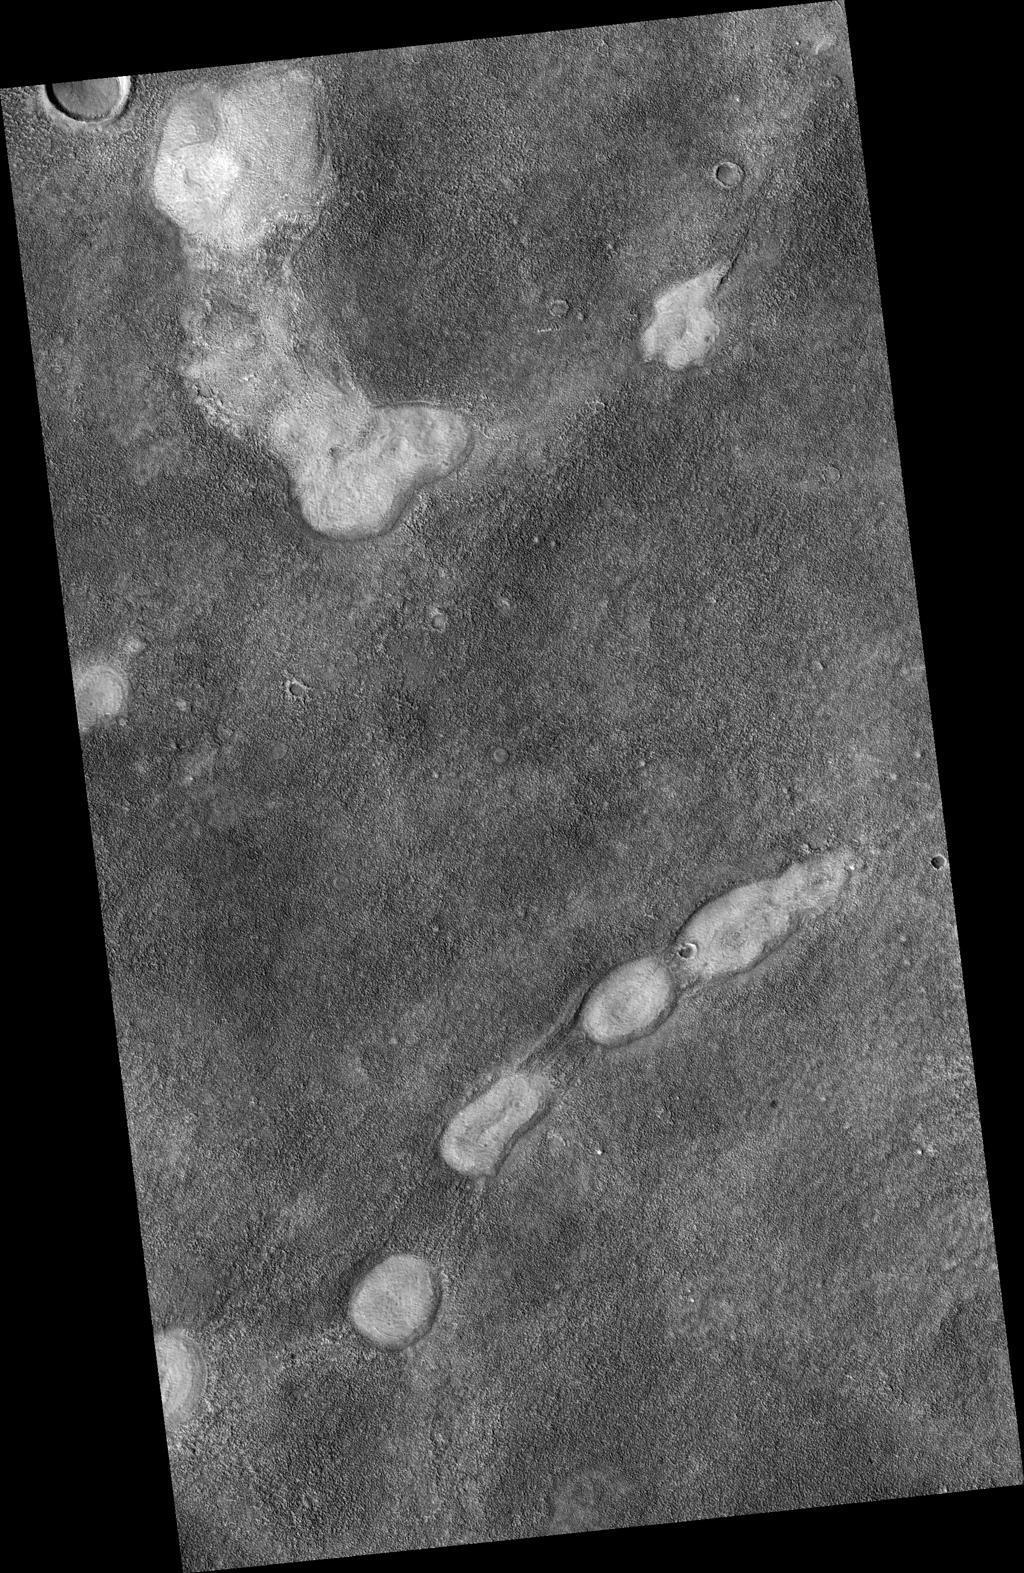 This image from NASA's Mars Reconnaissance Orbiter is a proposed future Mars landing site in Acidalia Planitia targets densely occurring mounds thought to be mud volcanoes.